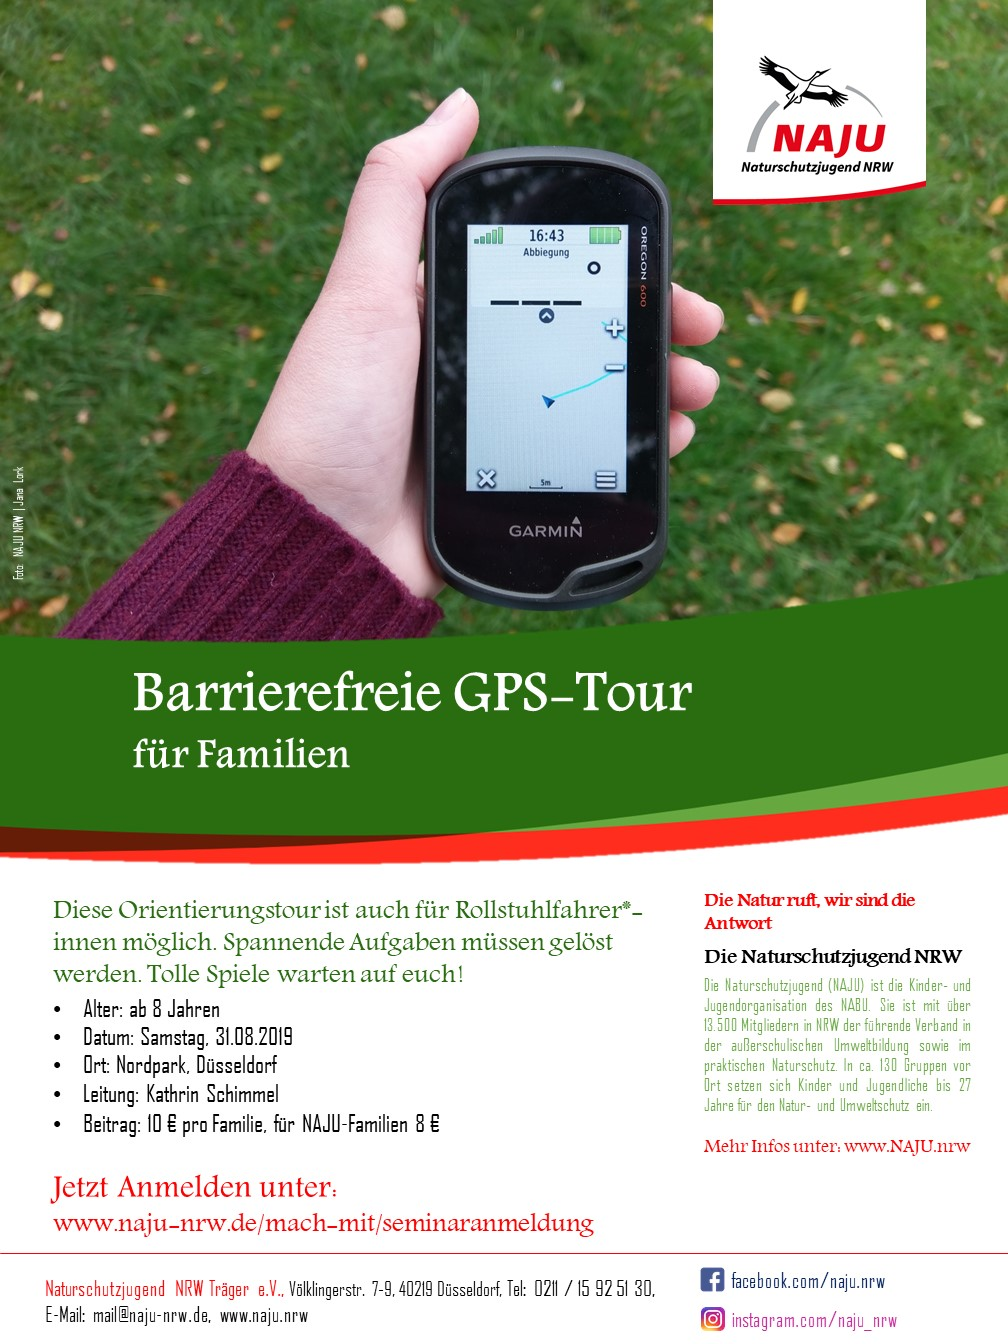 Barrierefreie GPS Tour